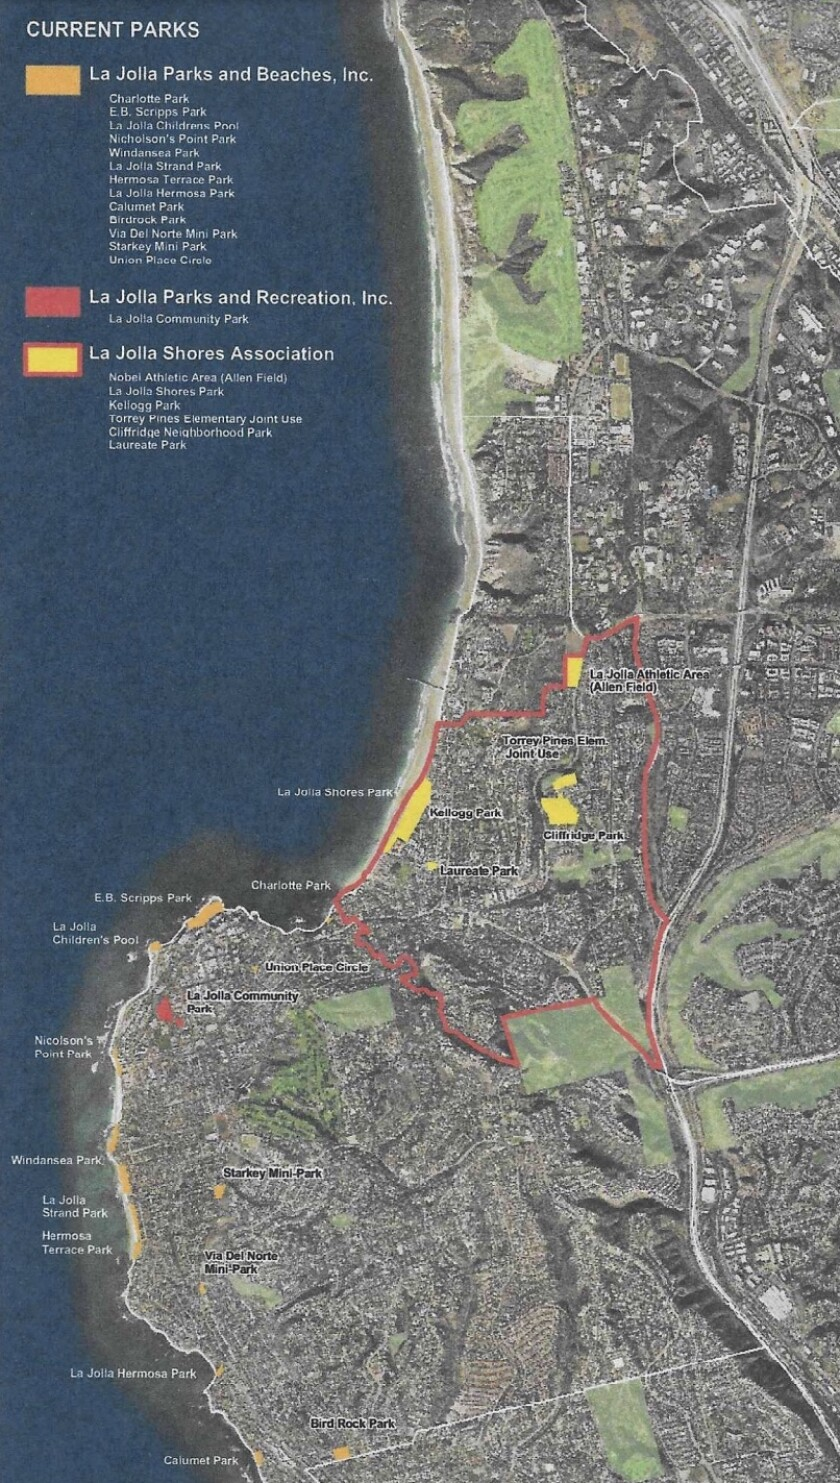 This 2011 map, included with the 2016 La Jolla Parks & Beaches bylaws, led to confusion about the group's purview.